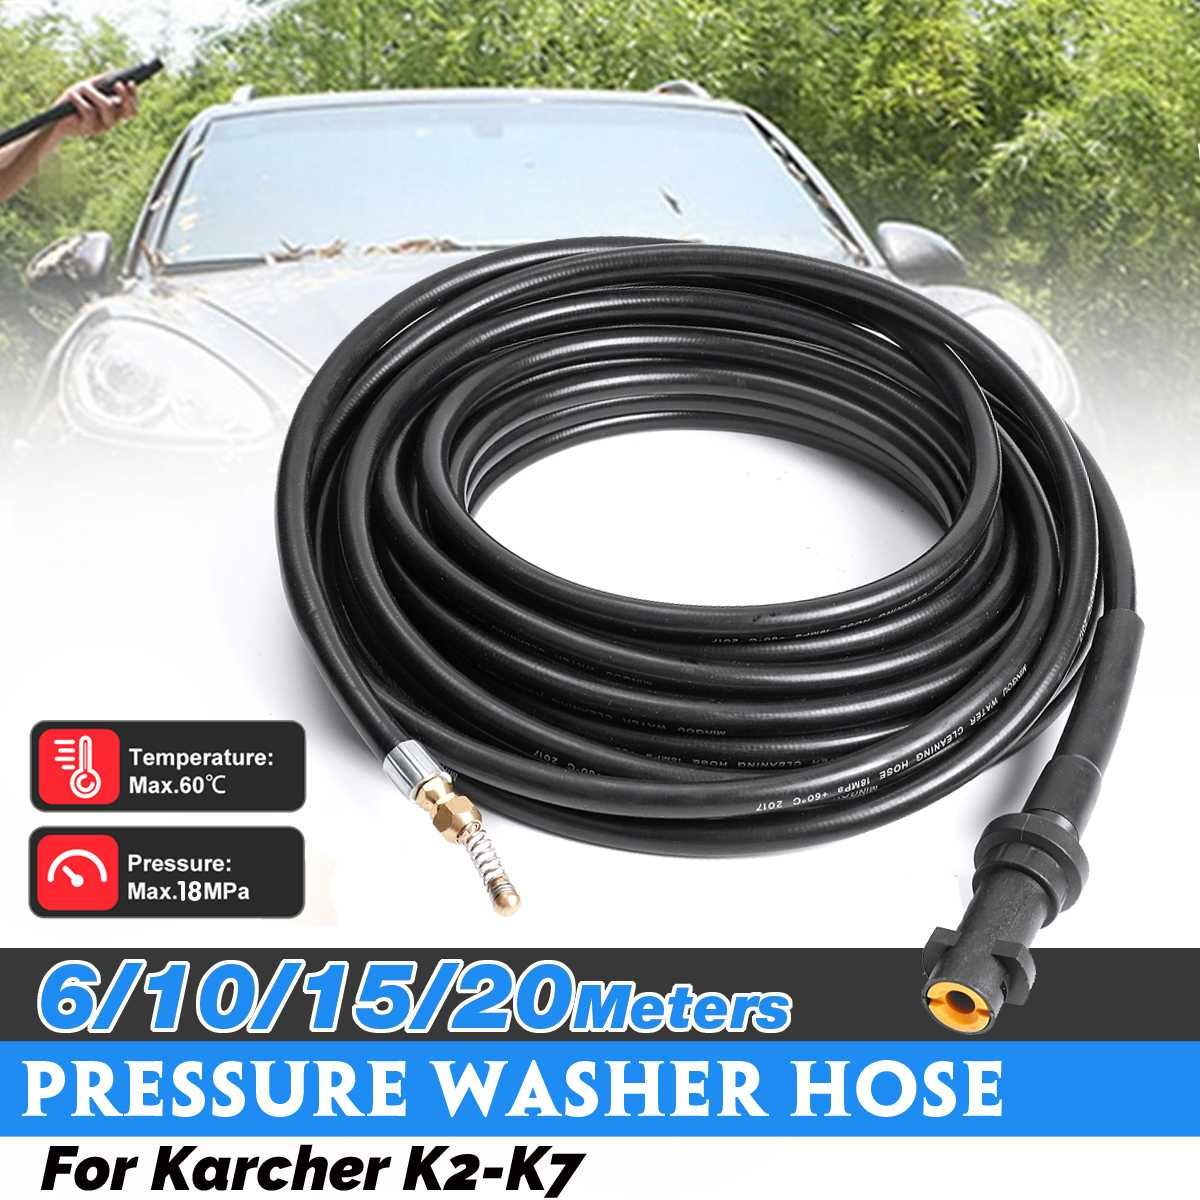 K7 Series Domestic Pressure Wa Kärcher 15 m Pipe and Drain Cleaning Kit for K2